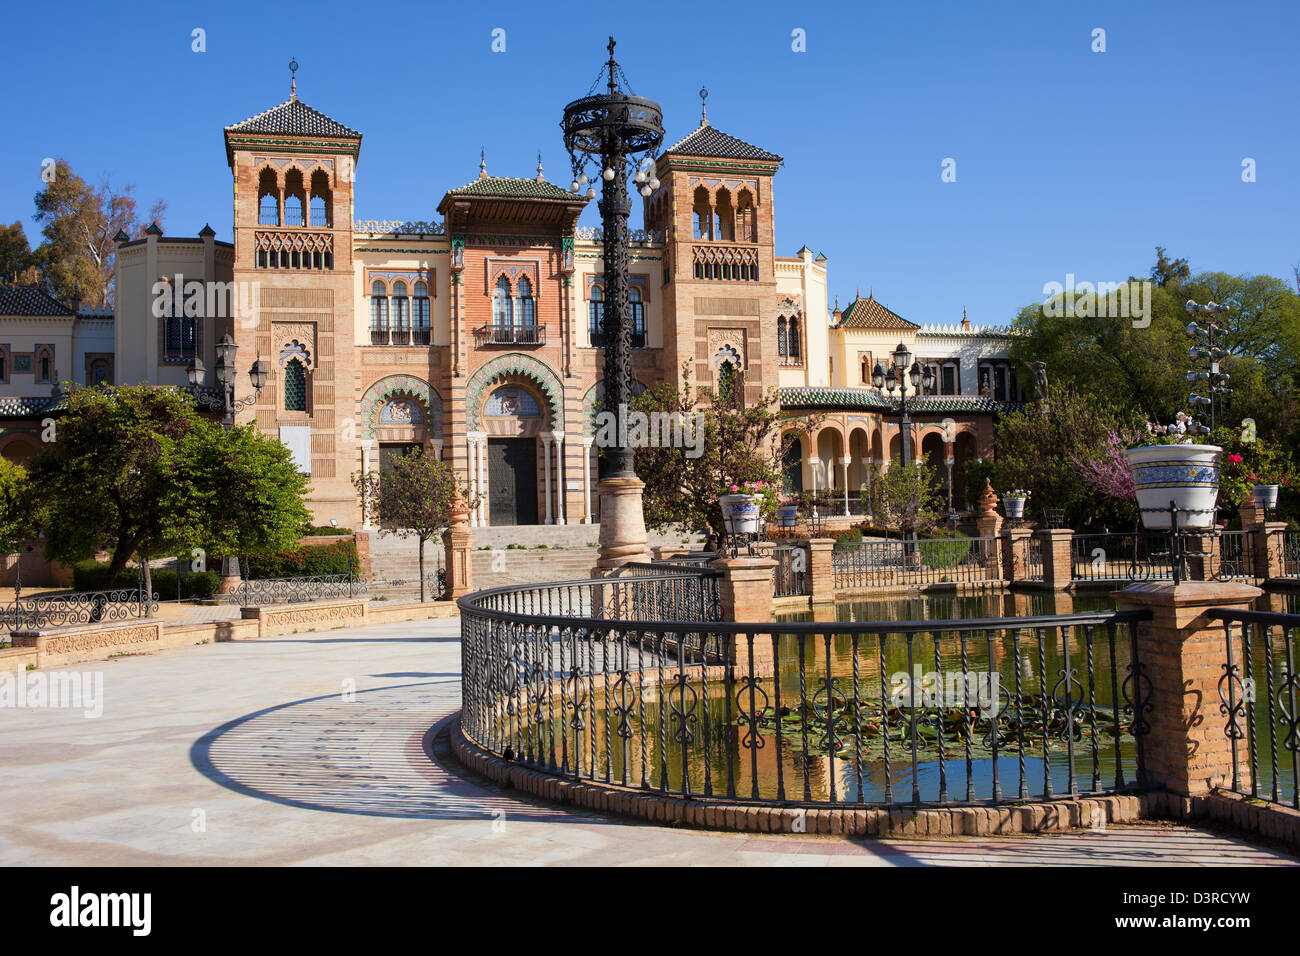 Museum of Arts and Traditions of Sevilla in Mudejar pavilion, Maria Luisa Park, Seville, Andalusia, Spain. - Stock Image